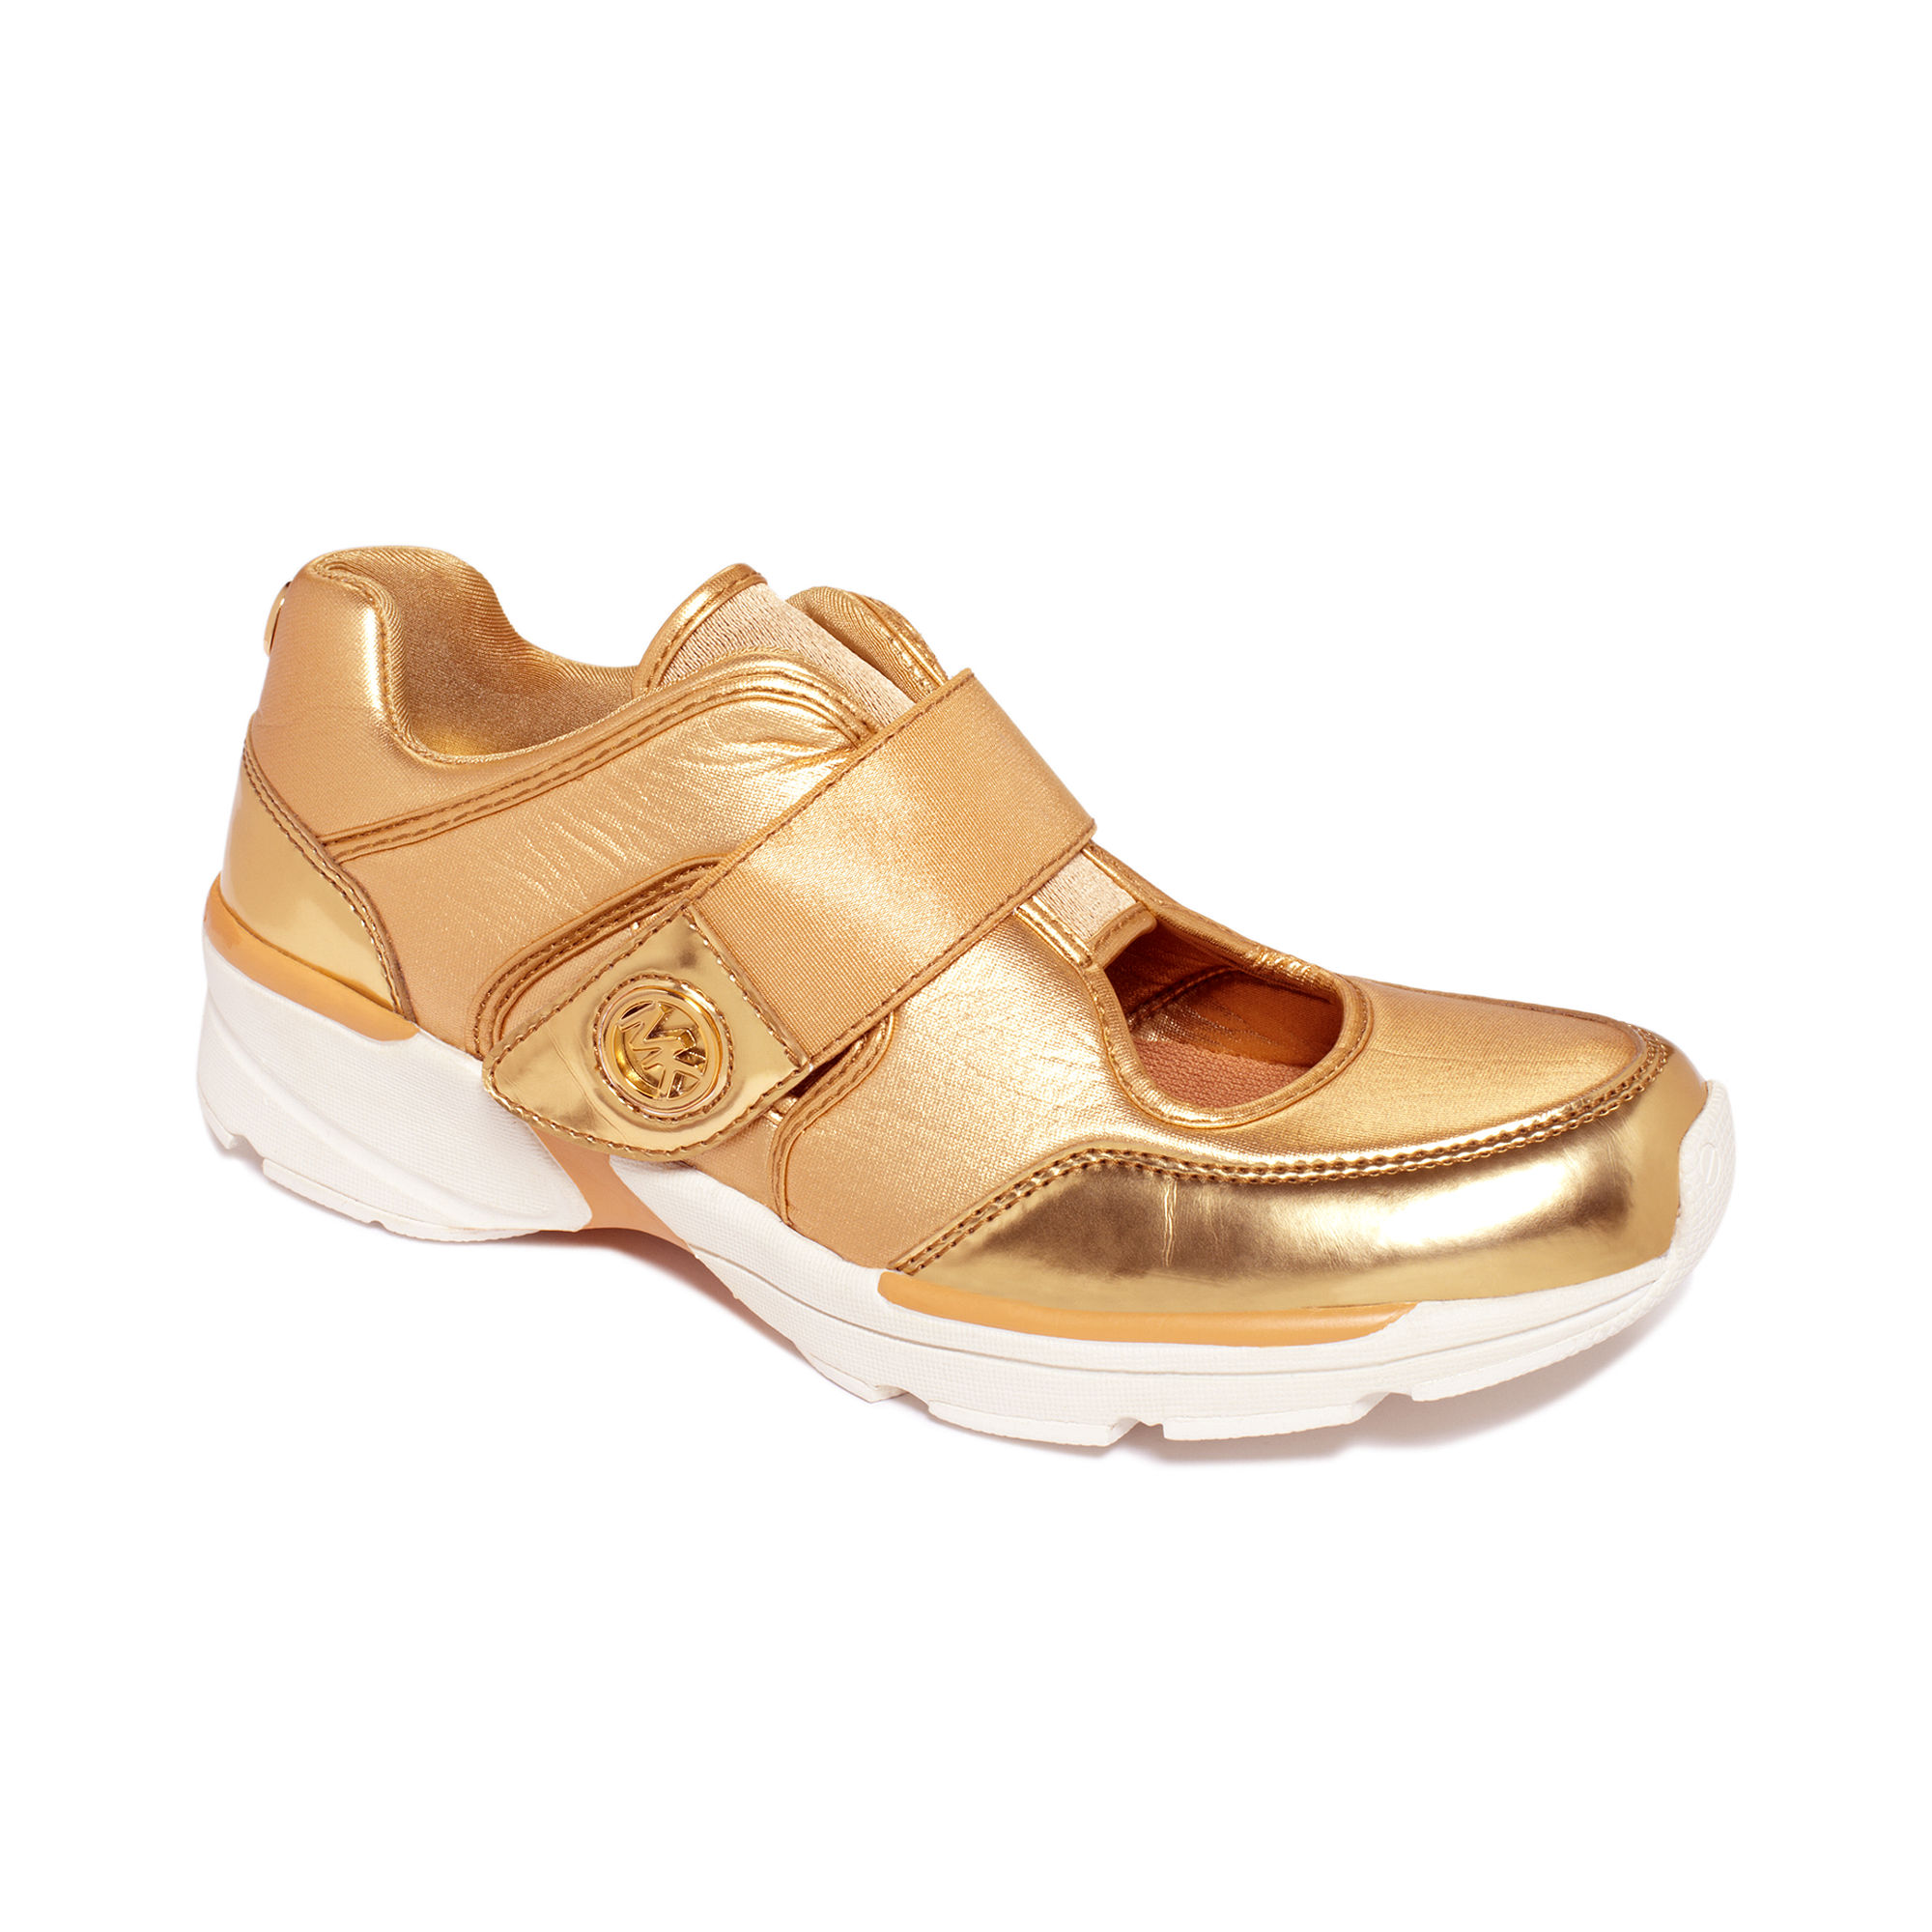 michael kors walker sneakers in gold lyst. Black Bedroom Furniture Sets. Home Design Ideas